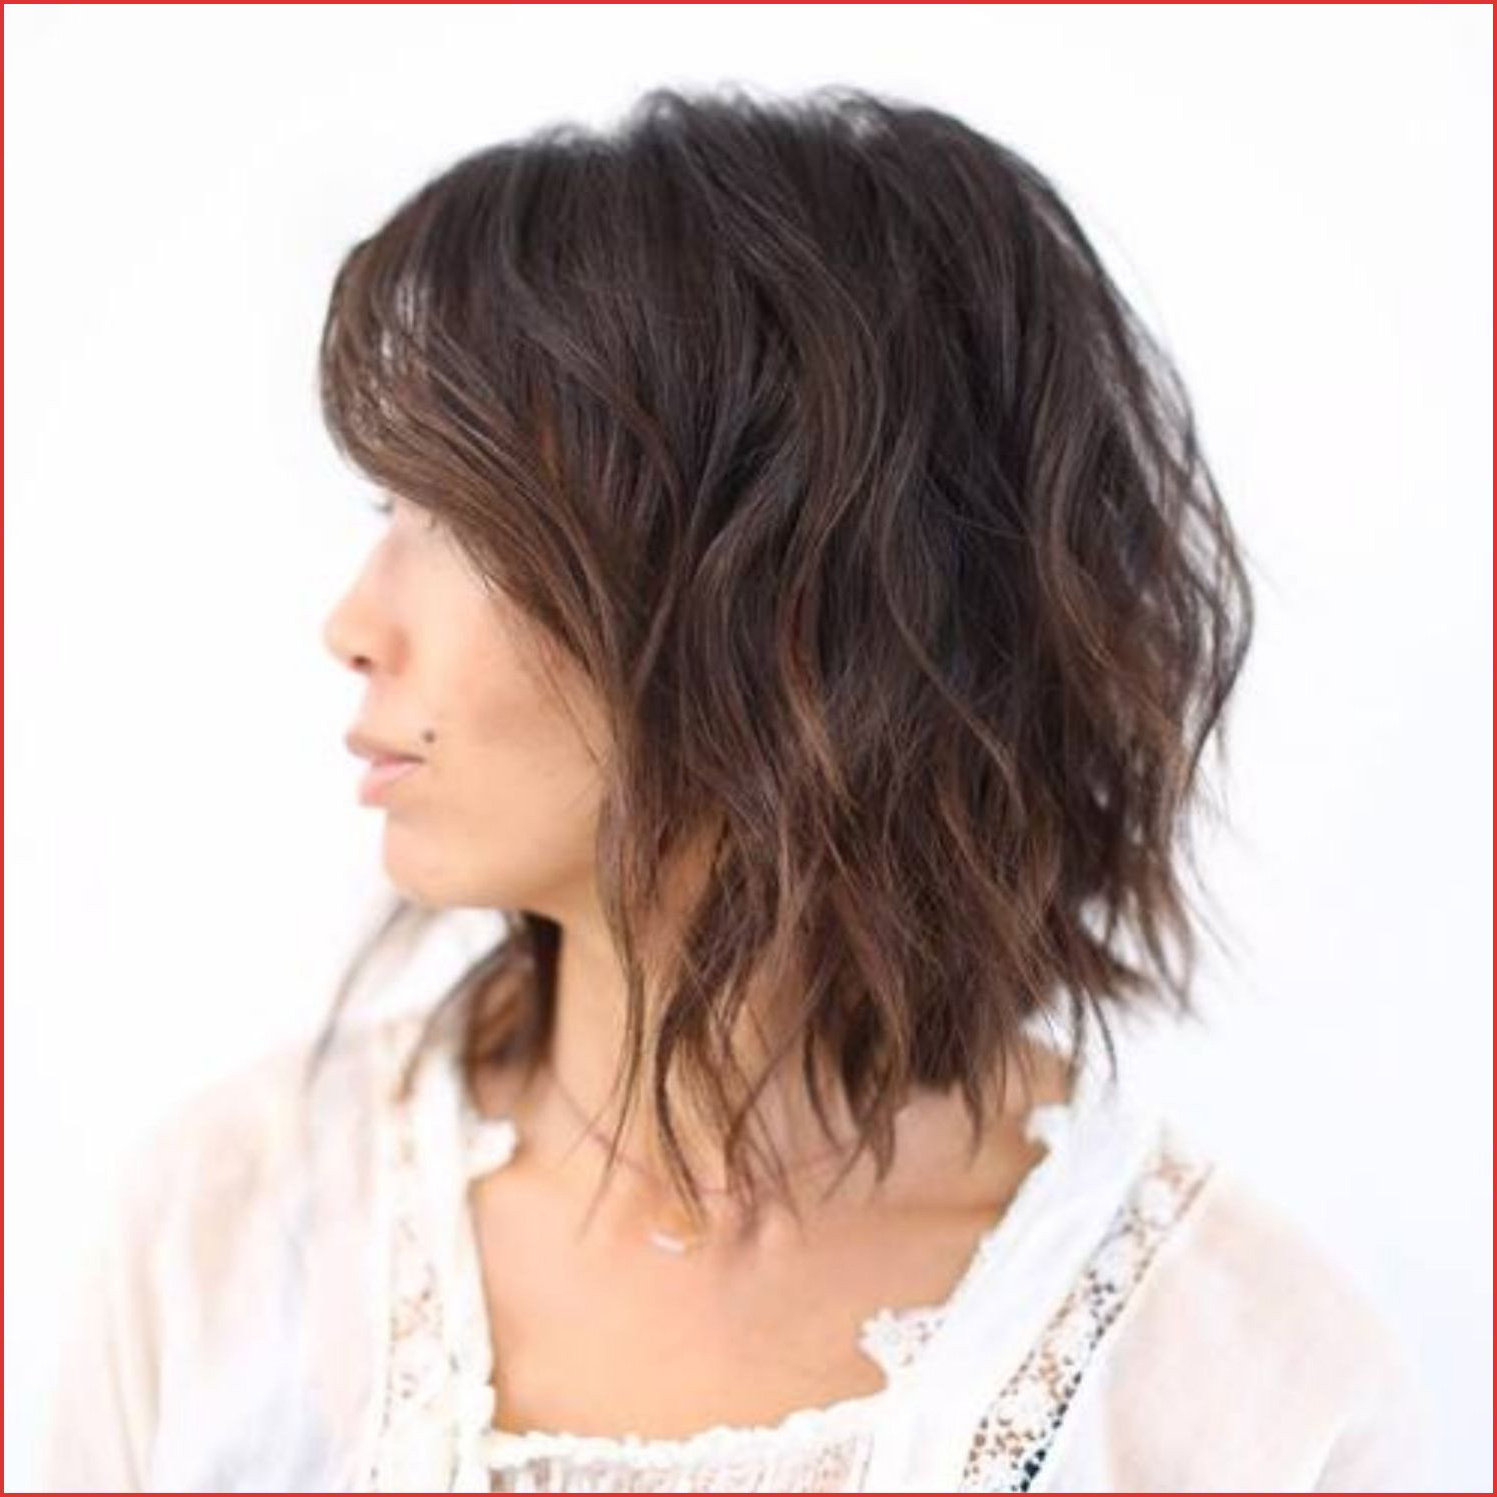 Medium Length Layered Hairstyles For Thick Hair 2019 10 For Most Popular Medium Length Choppy Layers Hairstyles (View 12 of 20)